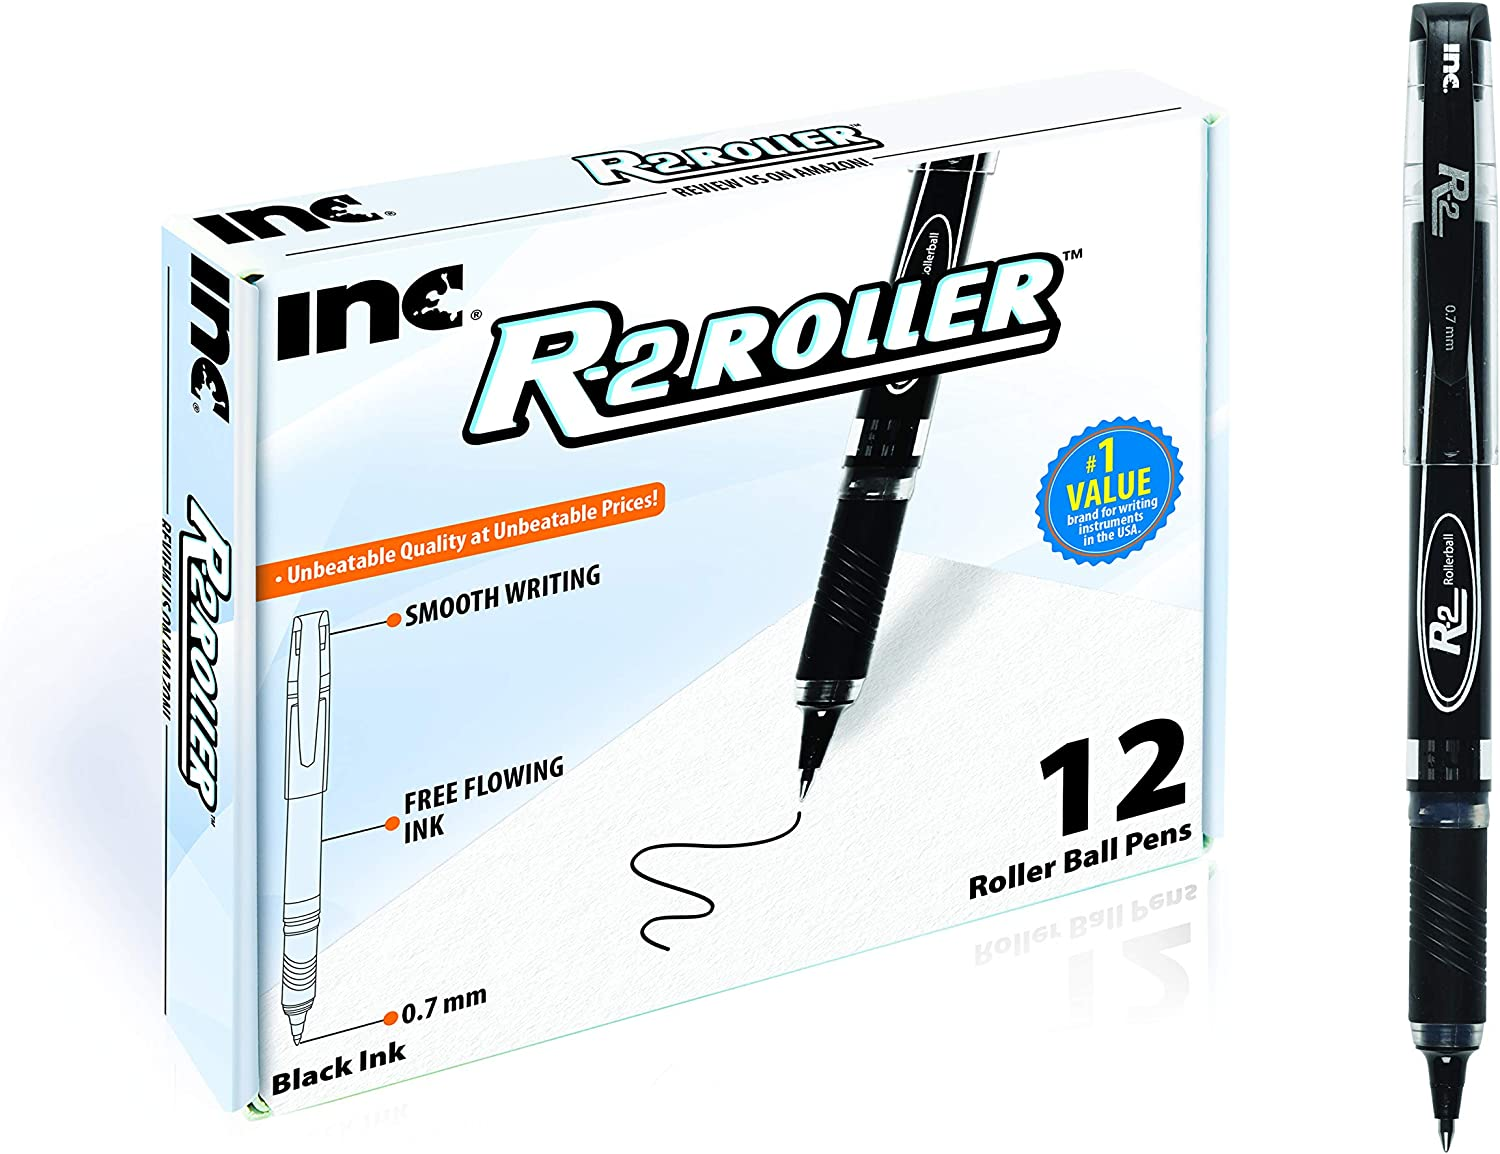 INC R2 ROLLERBALL 0.7 MM Tip Medium Point 12 Count Comfort Grip R-2 Roller ball Pens with Free Flowing Liquid Ink for Smooth Writing, Premium Black Ink Pens for Home, School or Office